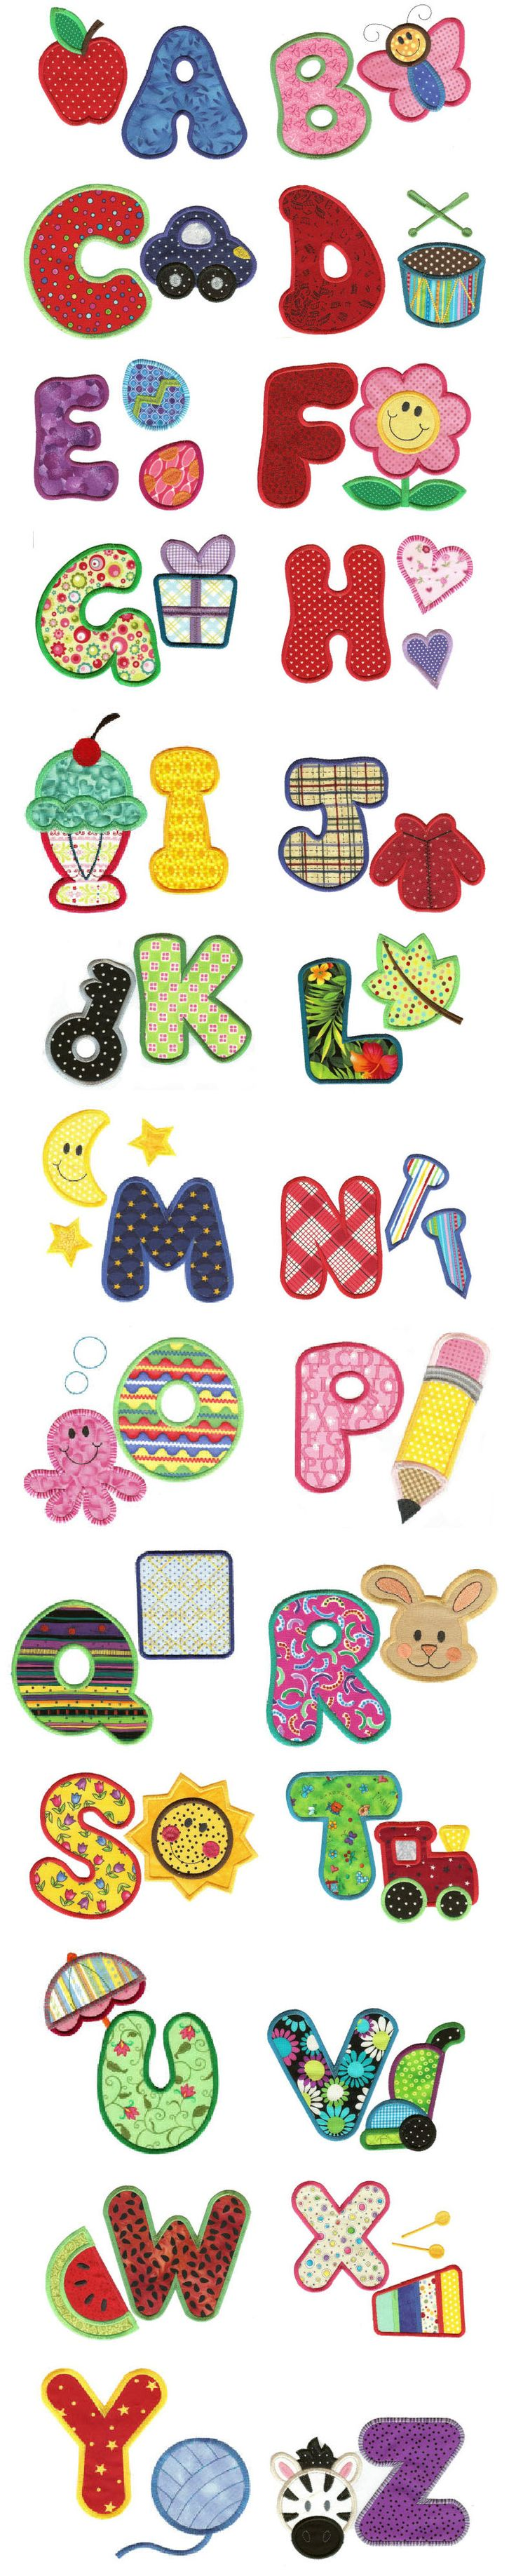 My ABCs Applique Alphabet, Designs by Juju